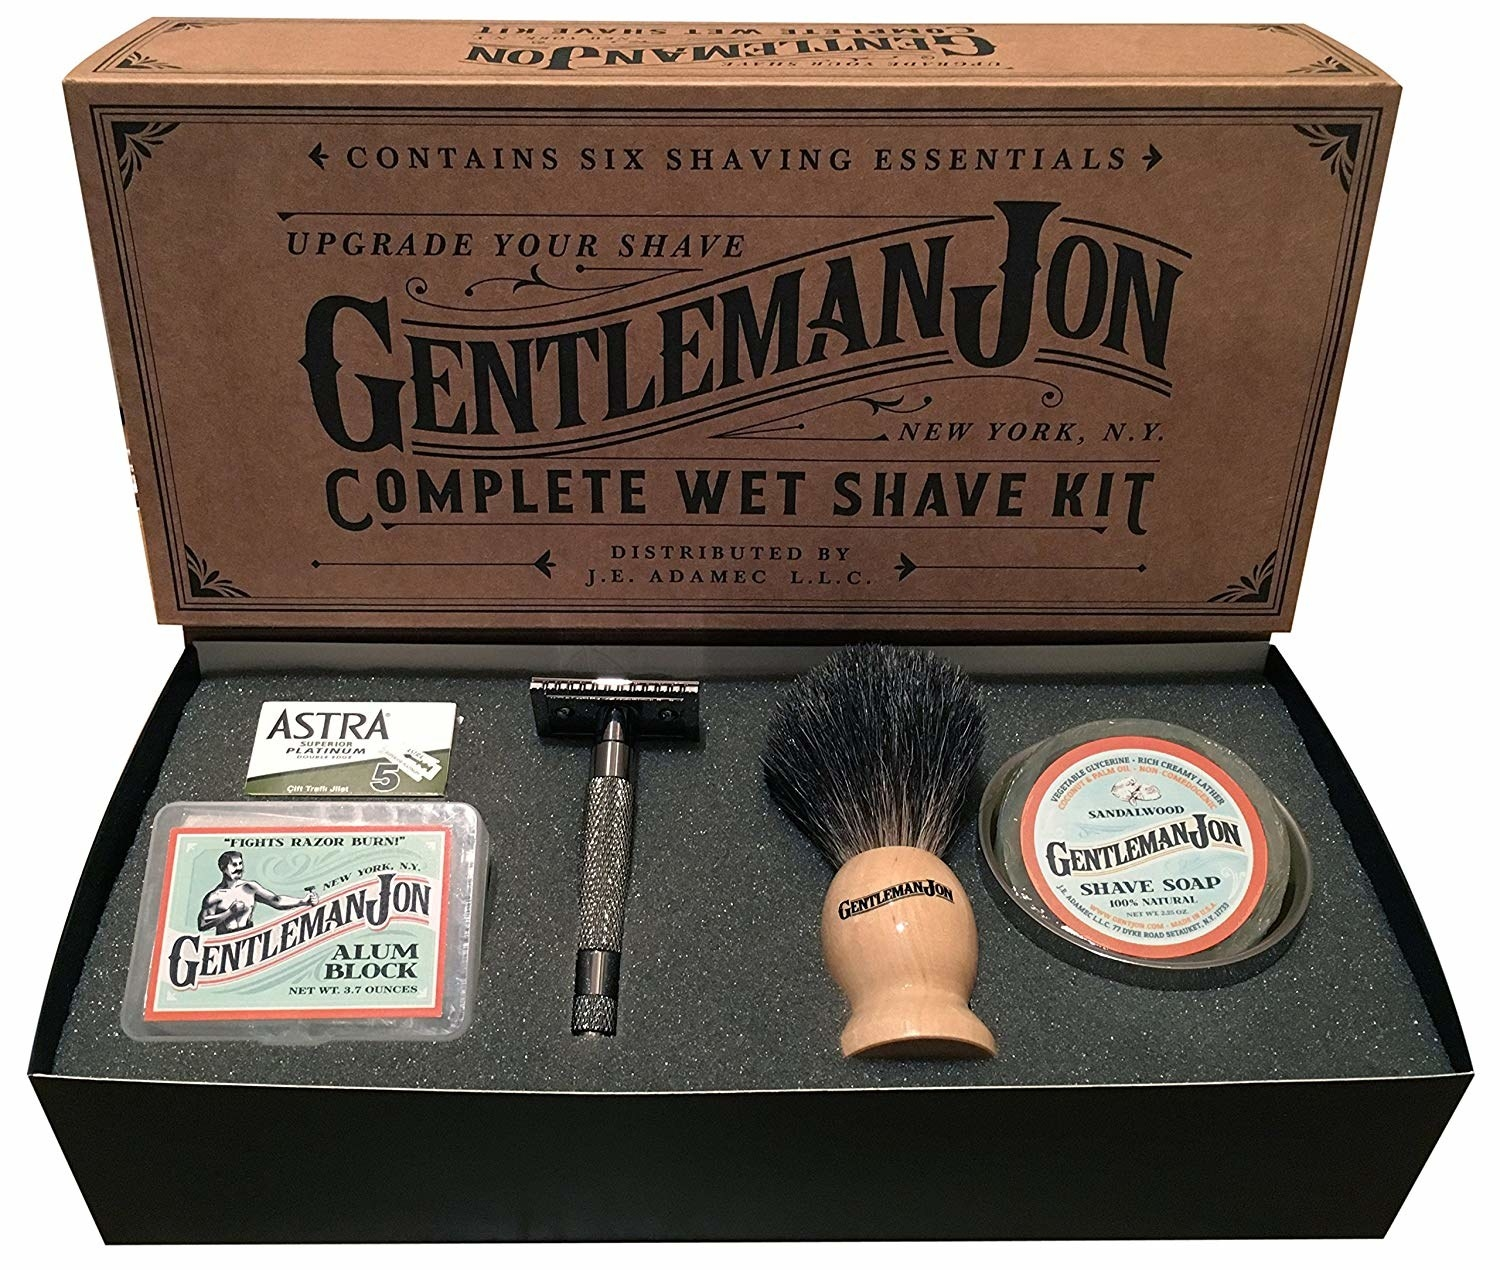 Gentleman Jon Complete Wet Shave Kit box with everything included in the box in front of it